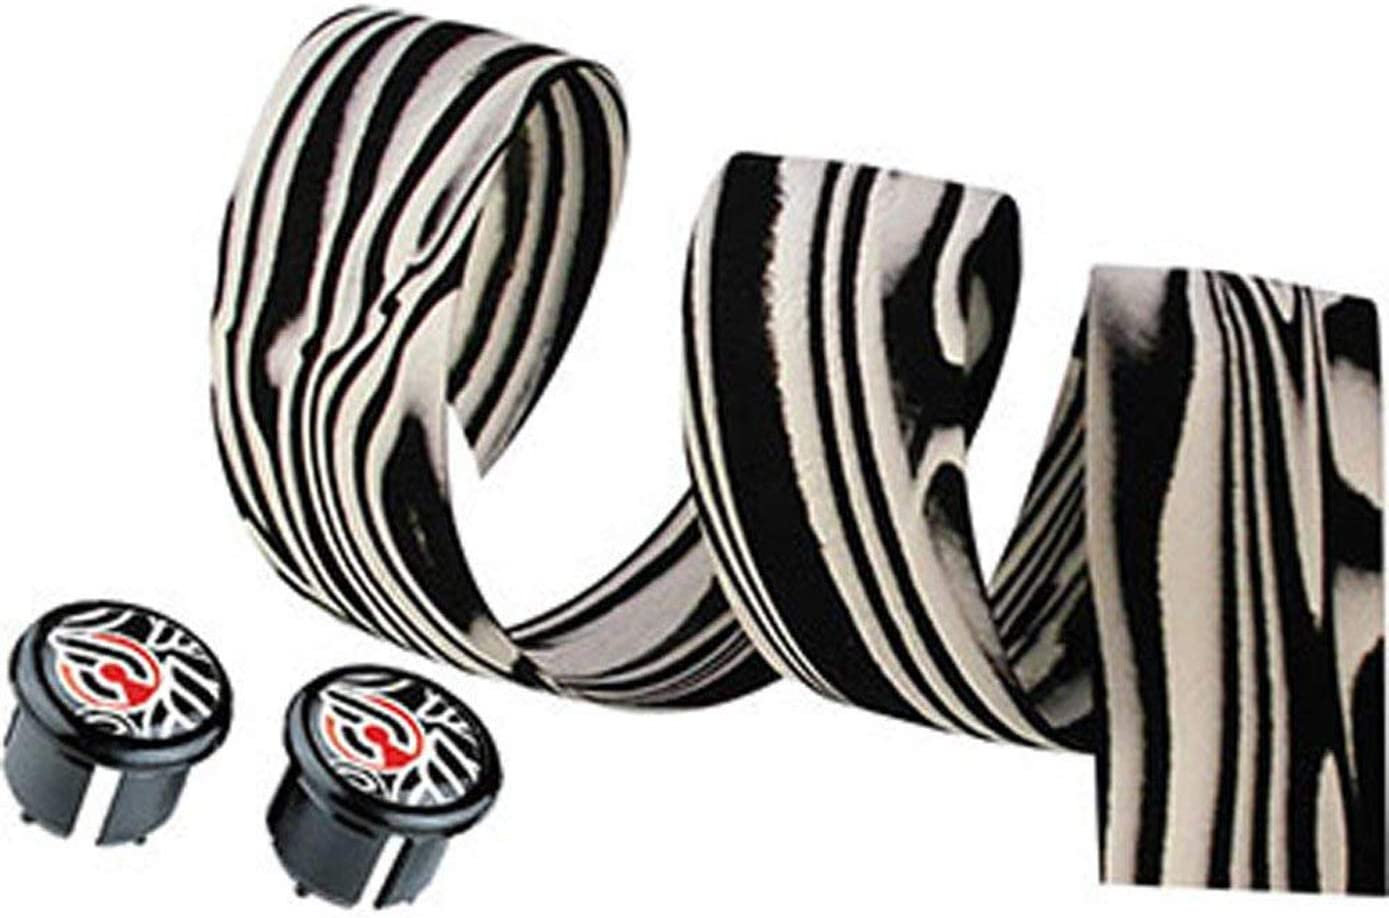 Cinelli Special Edition Handlebar Tape